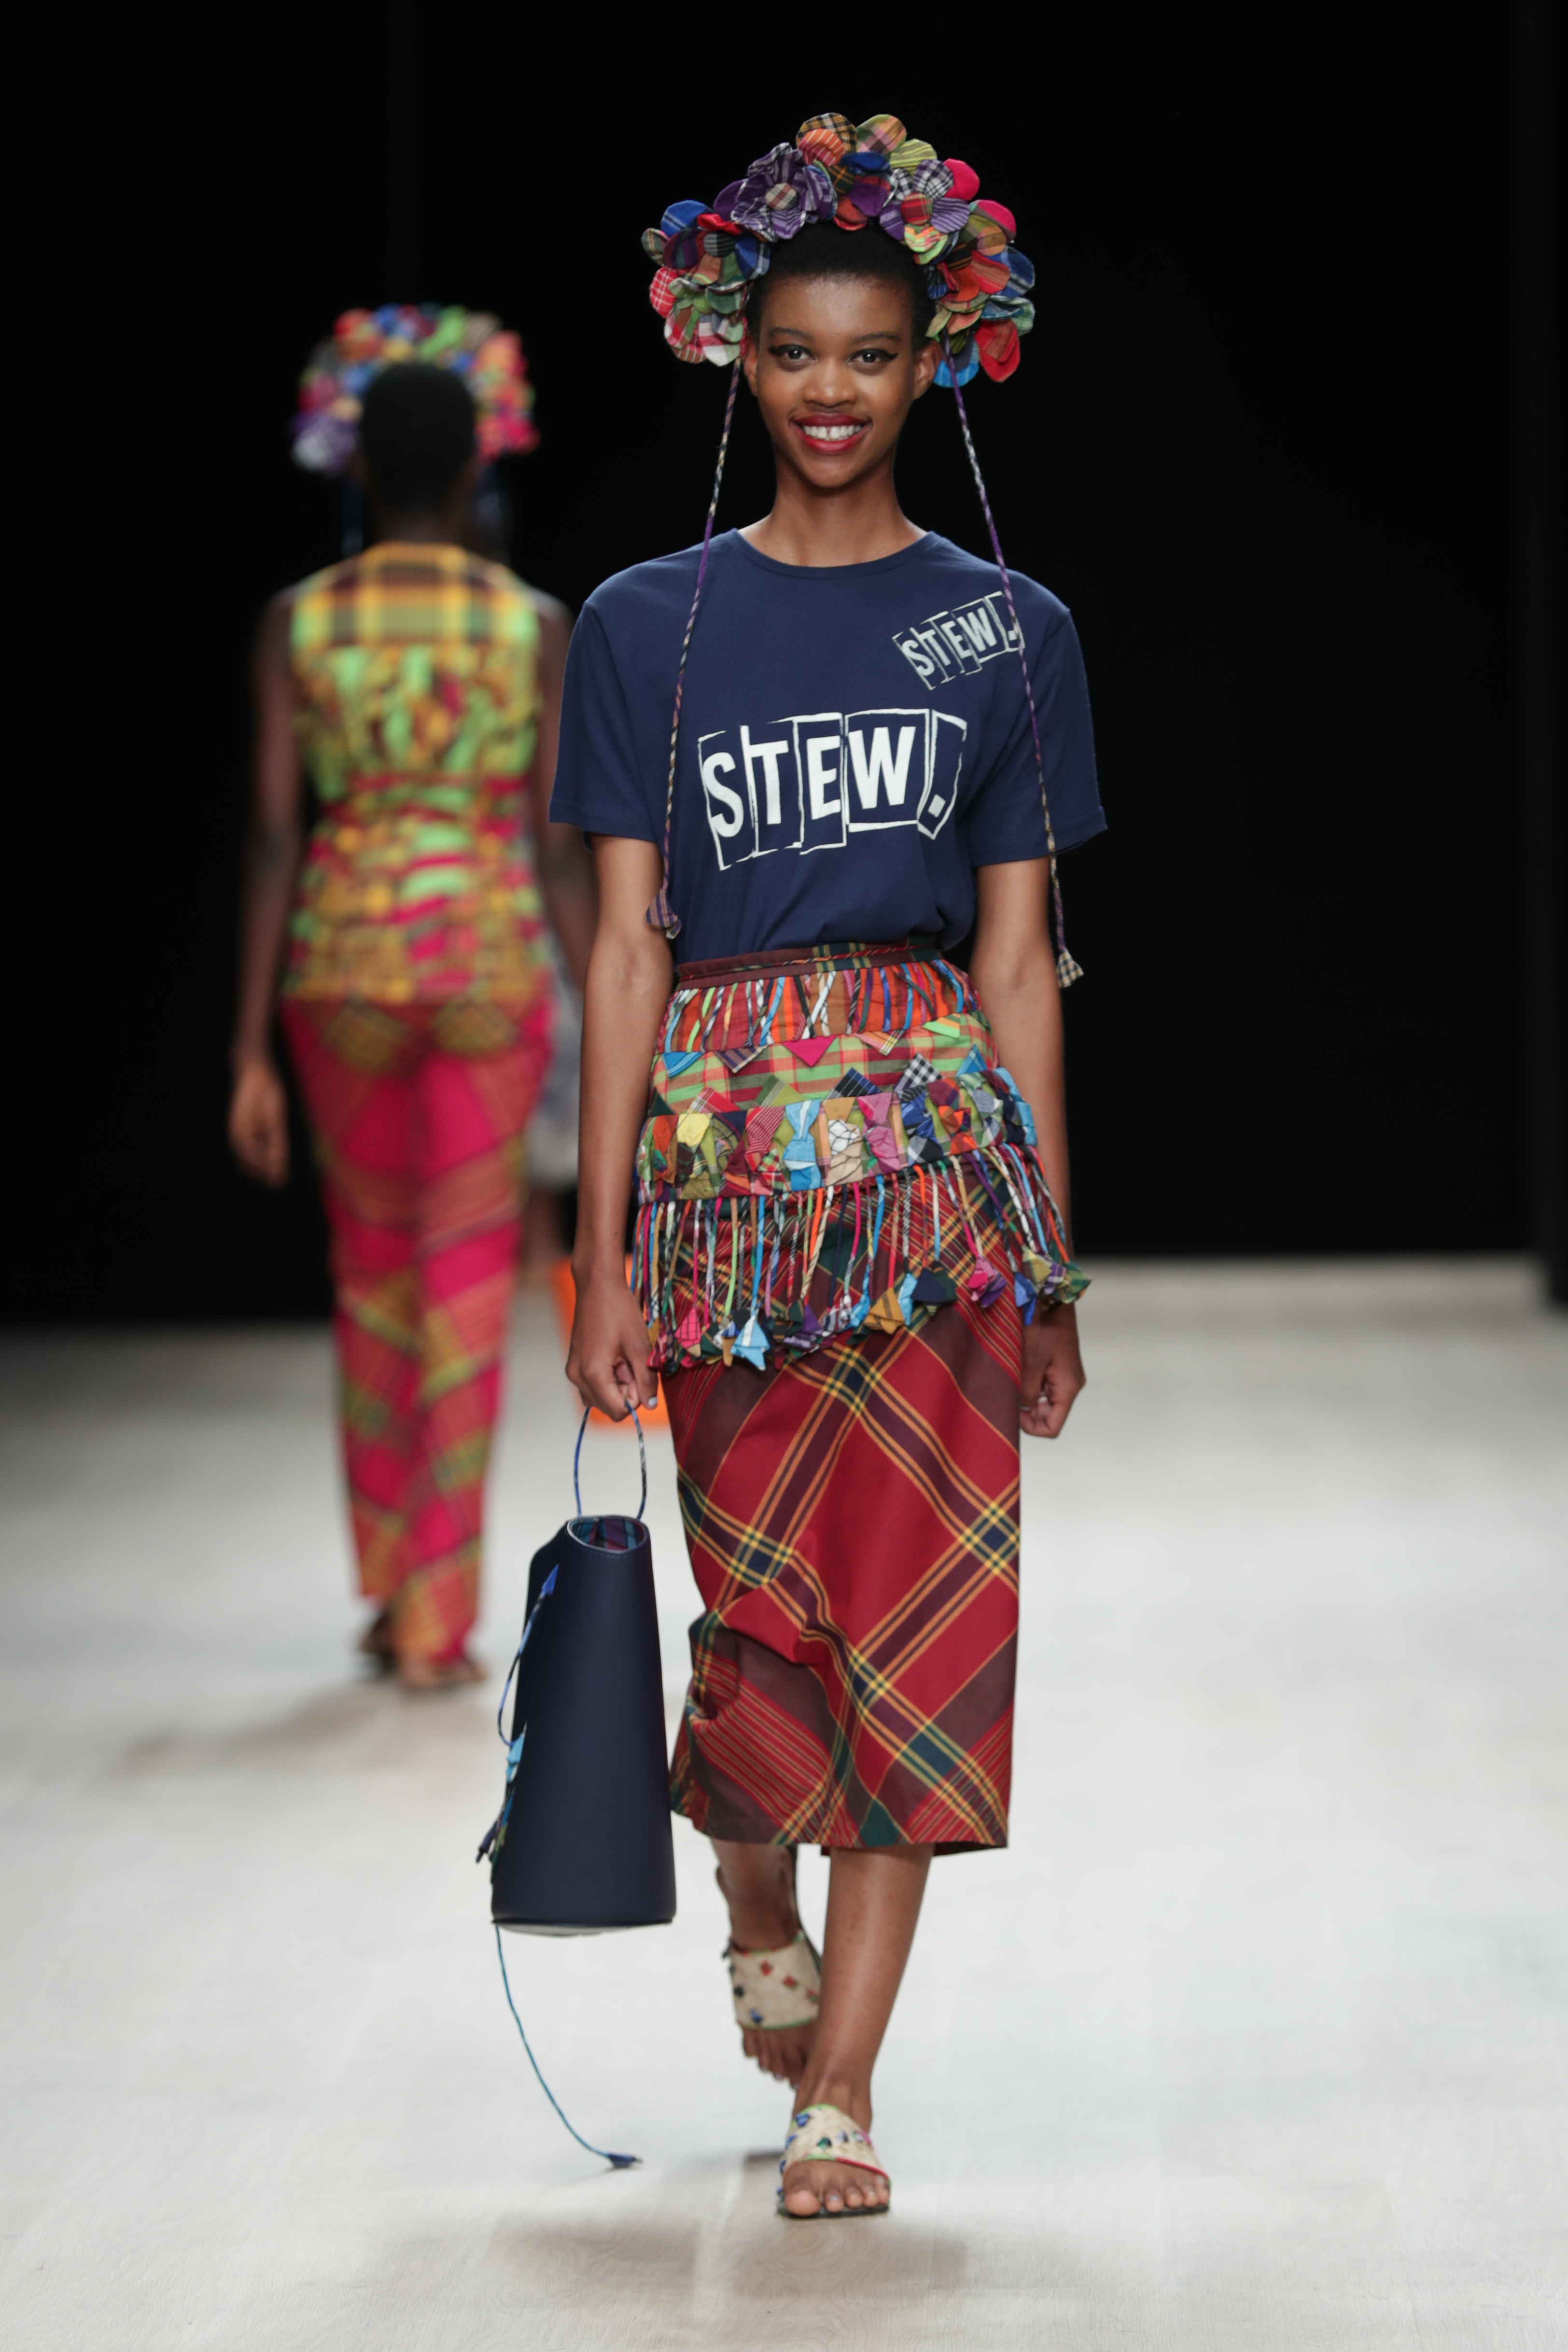 ARISE Fashion Week 2019 – Runway Day 3: Ituen Basi